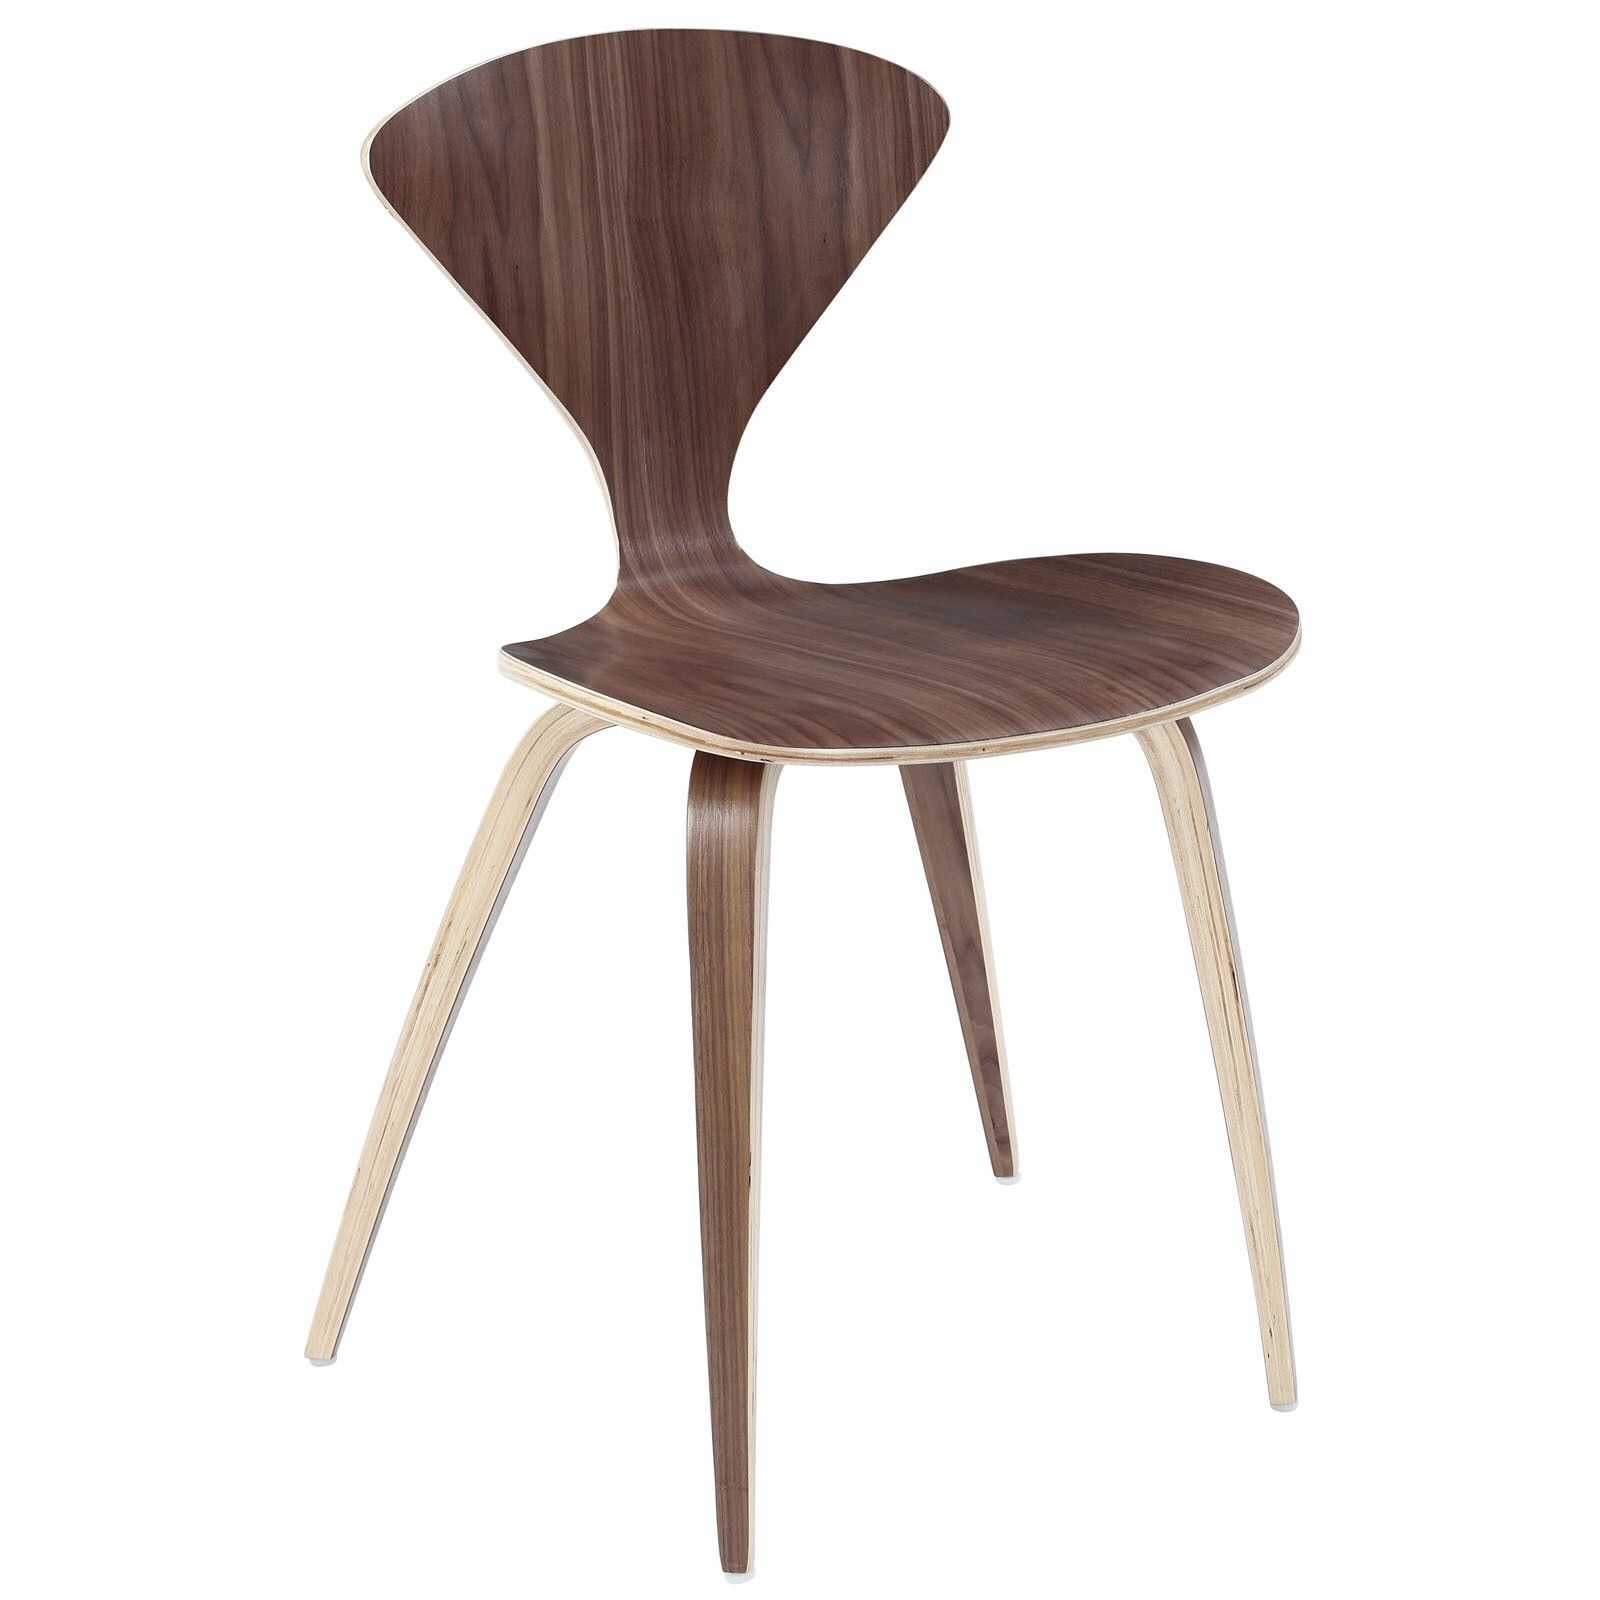 Norman cherner style modern side chair products pinterest products